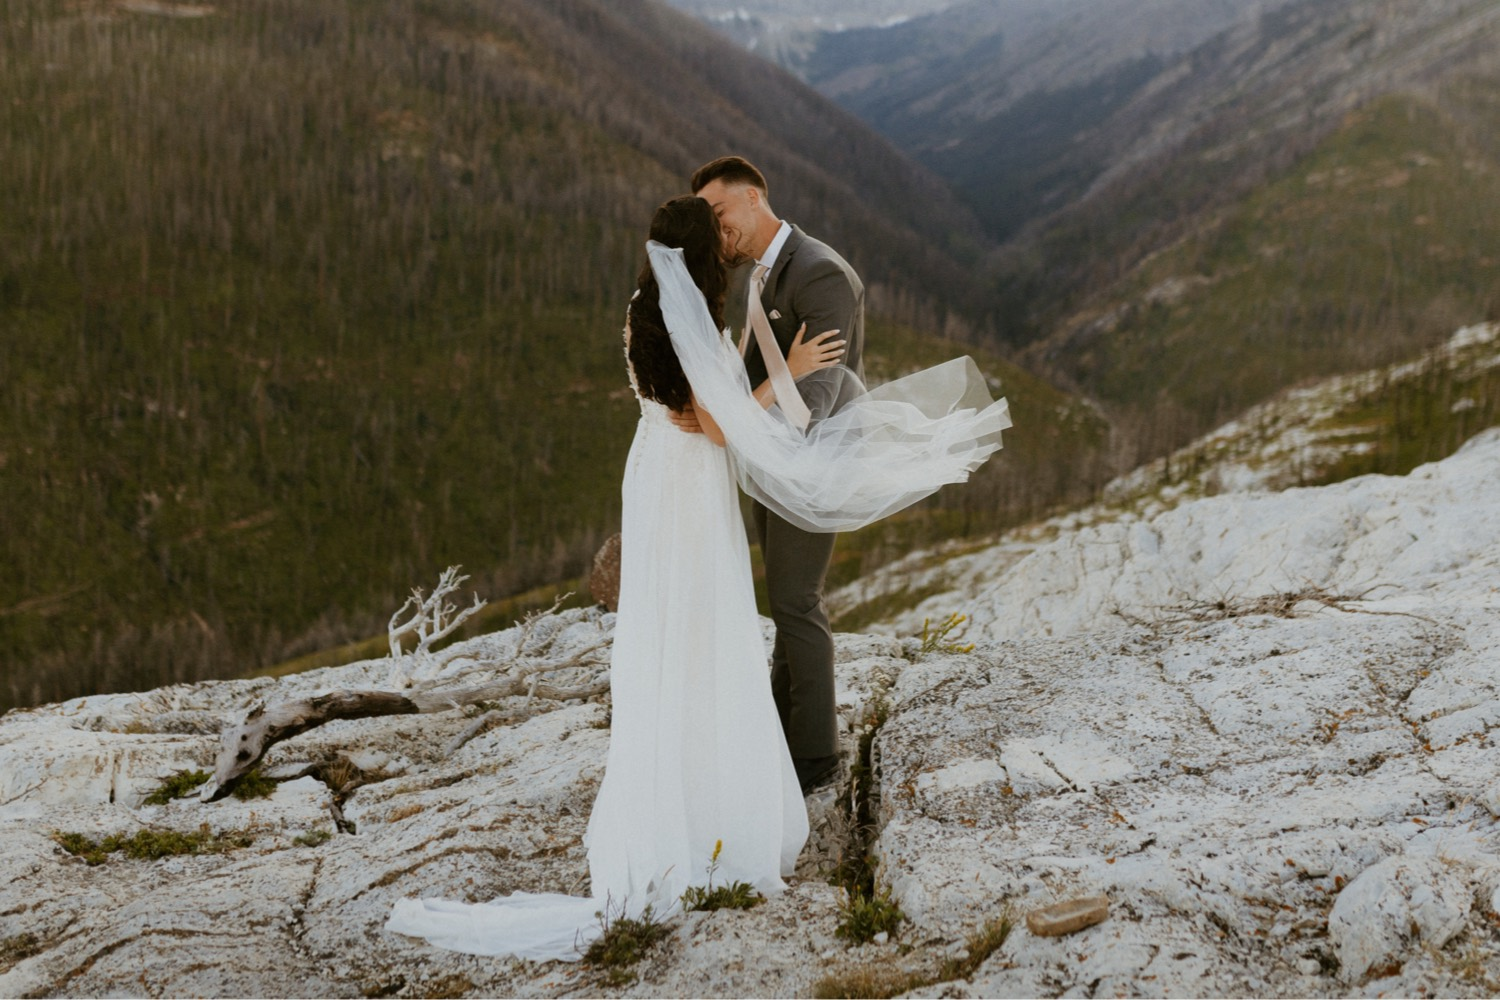 Waterton Wedding Adventurous Mountain Elopement style in the beautiful Canadian Rocky Mountains first look between bride and groom on the mountain top with personalized letters to each other